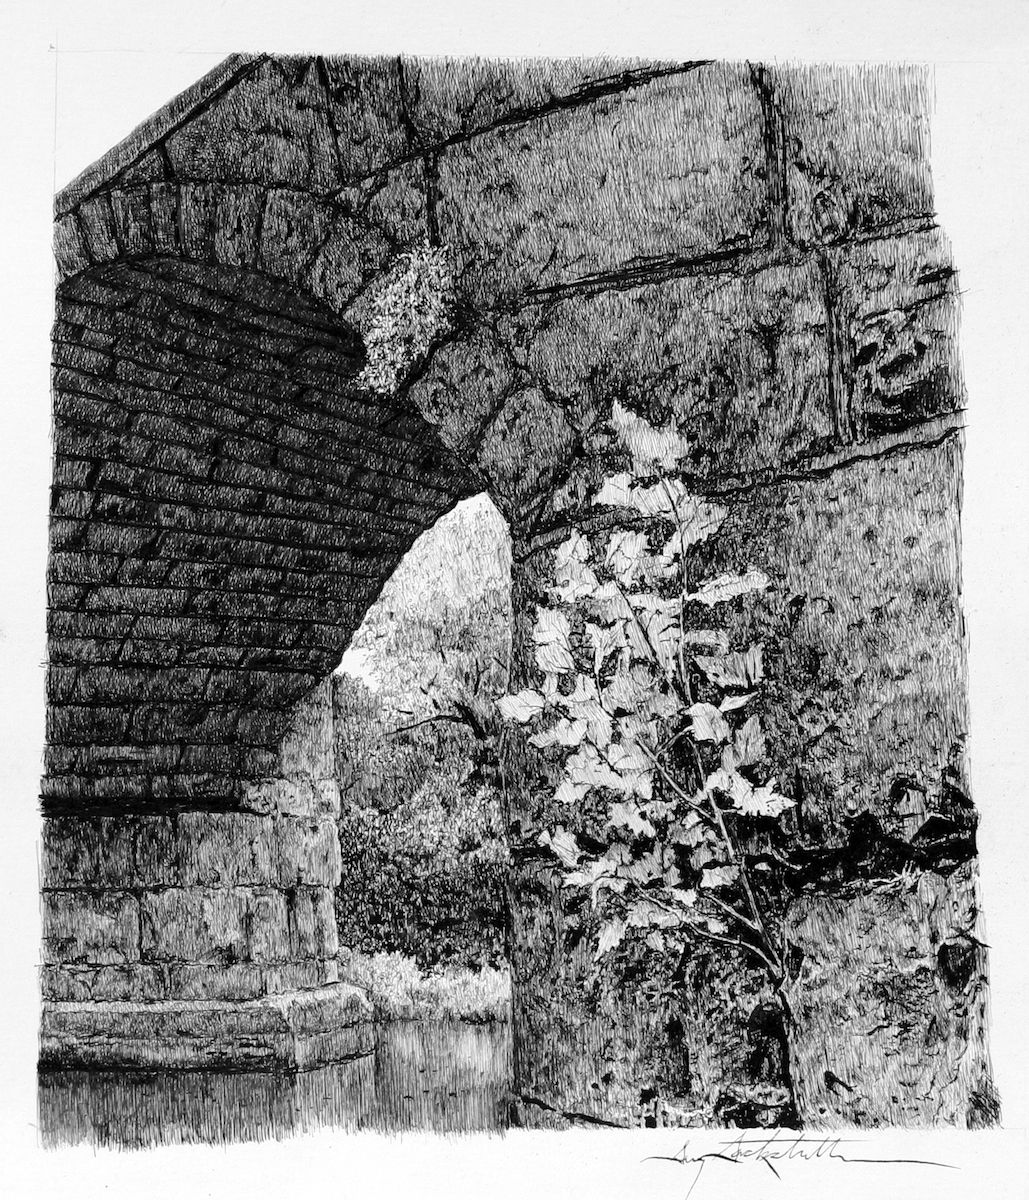 Stone Arch Bridge with Sapling